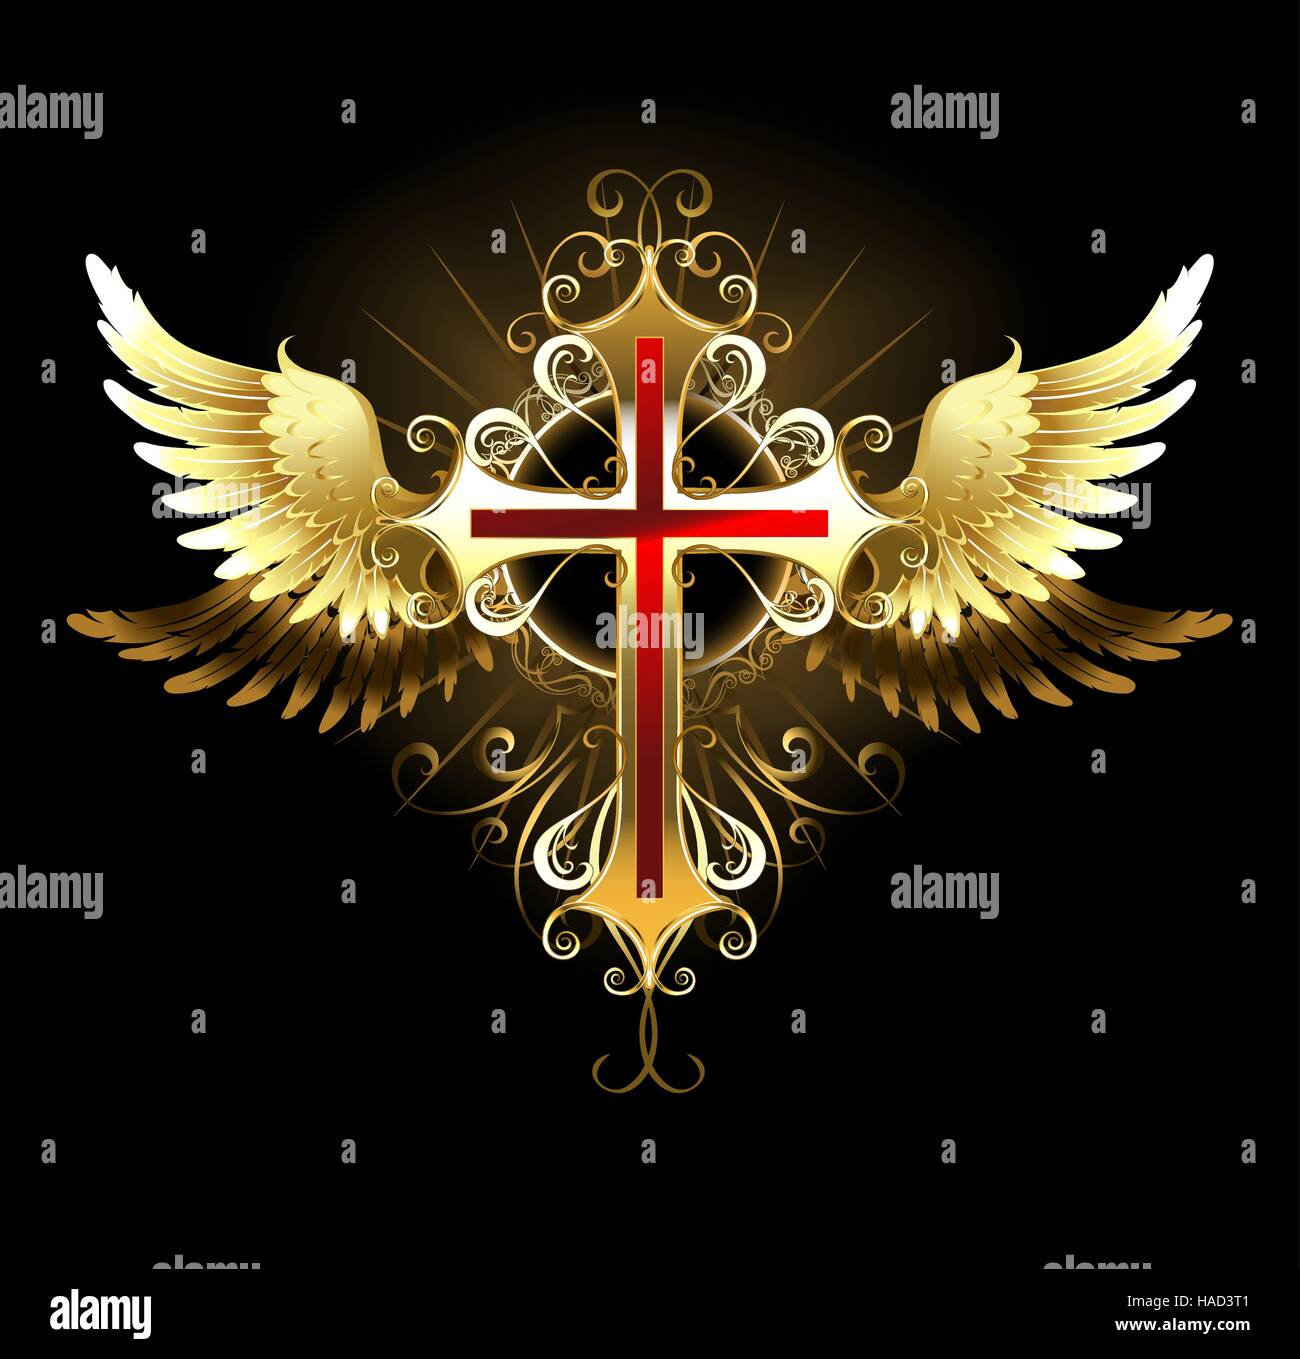 gold patterned cross jewelry with gold wings on a black background stock vector image art alamy https www alamy com stock photo gold patterned cross jewelry with gold wings on a black background 126907537 html